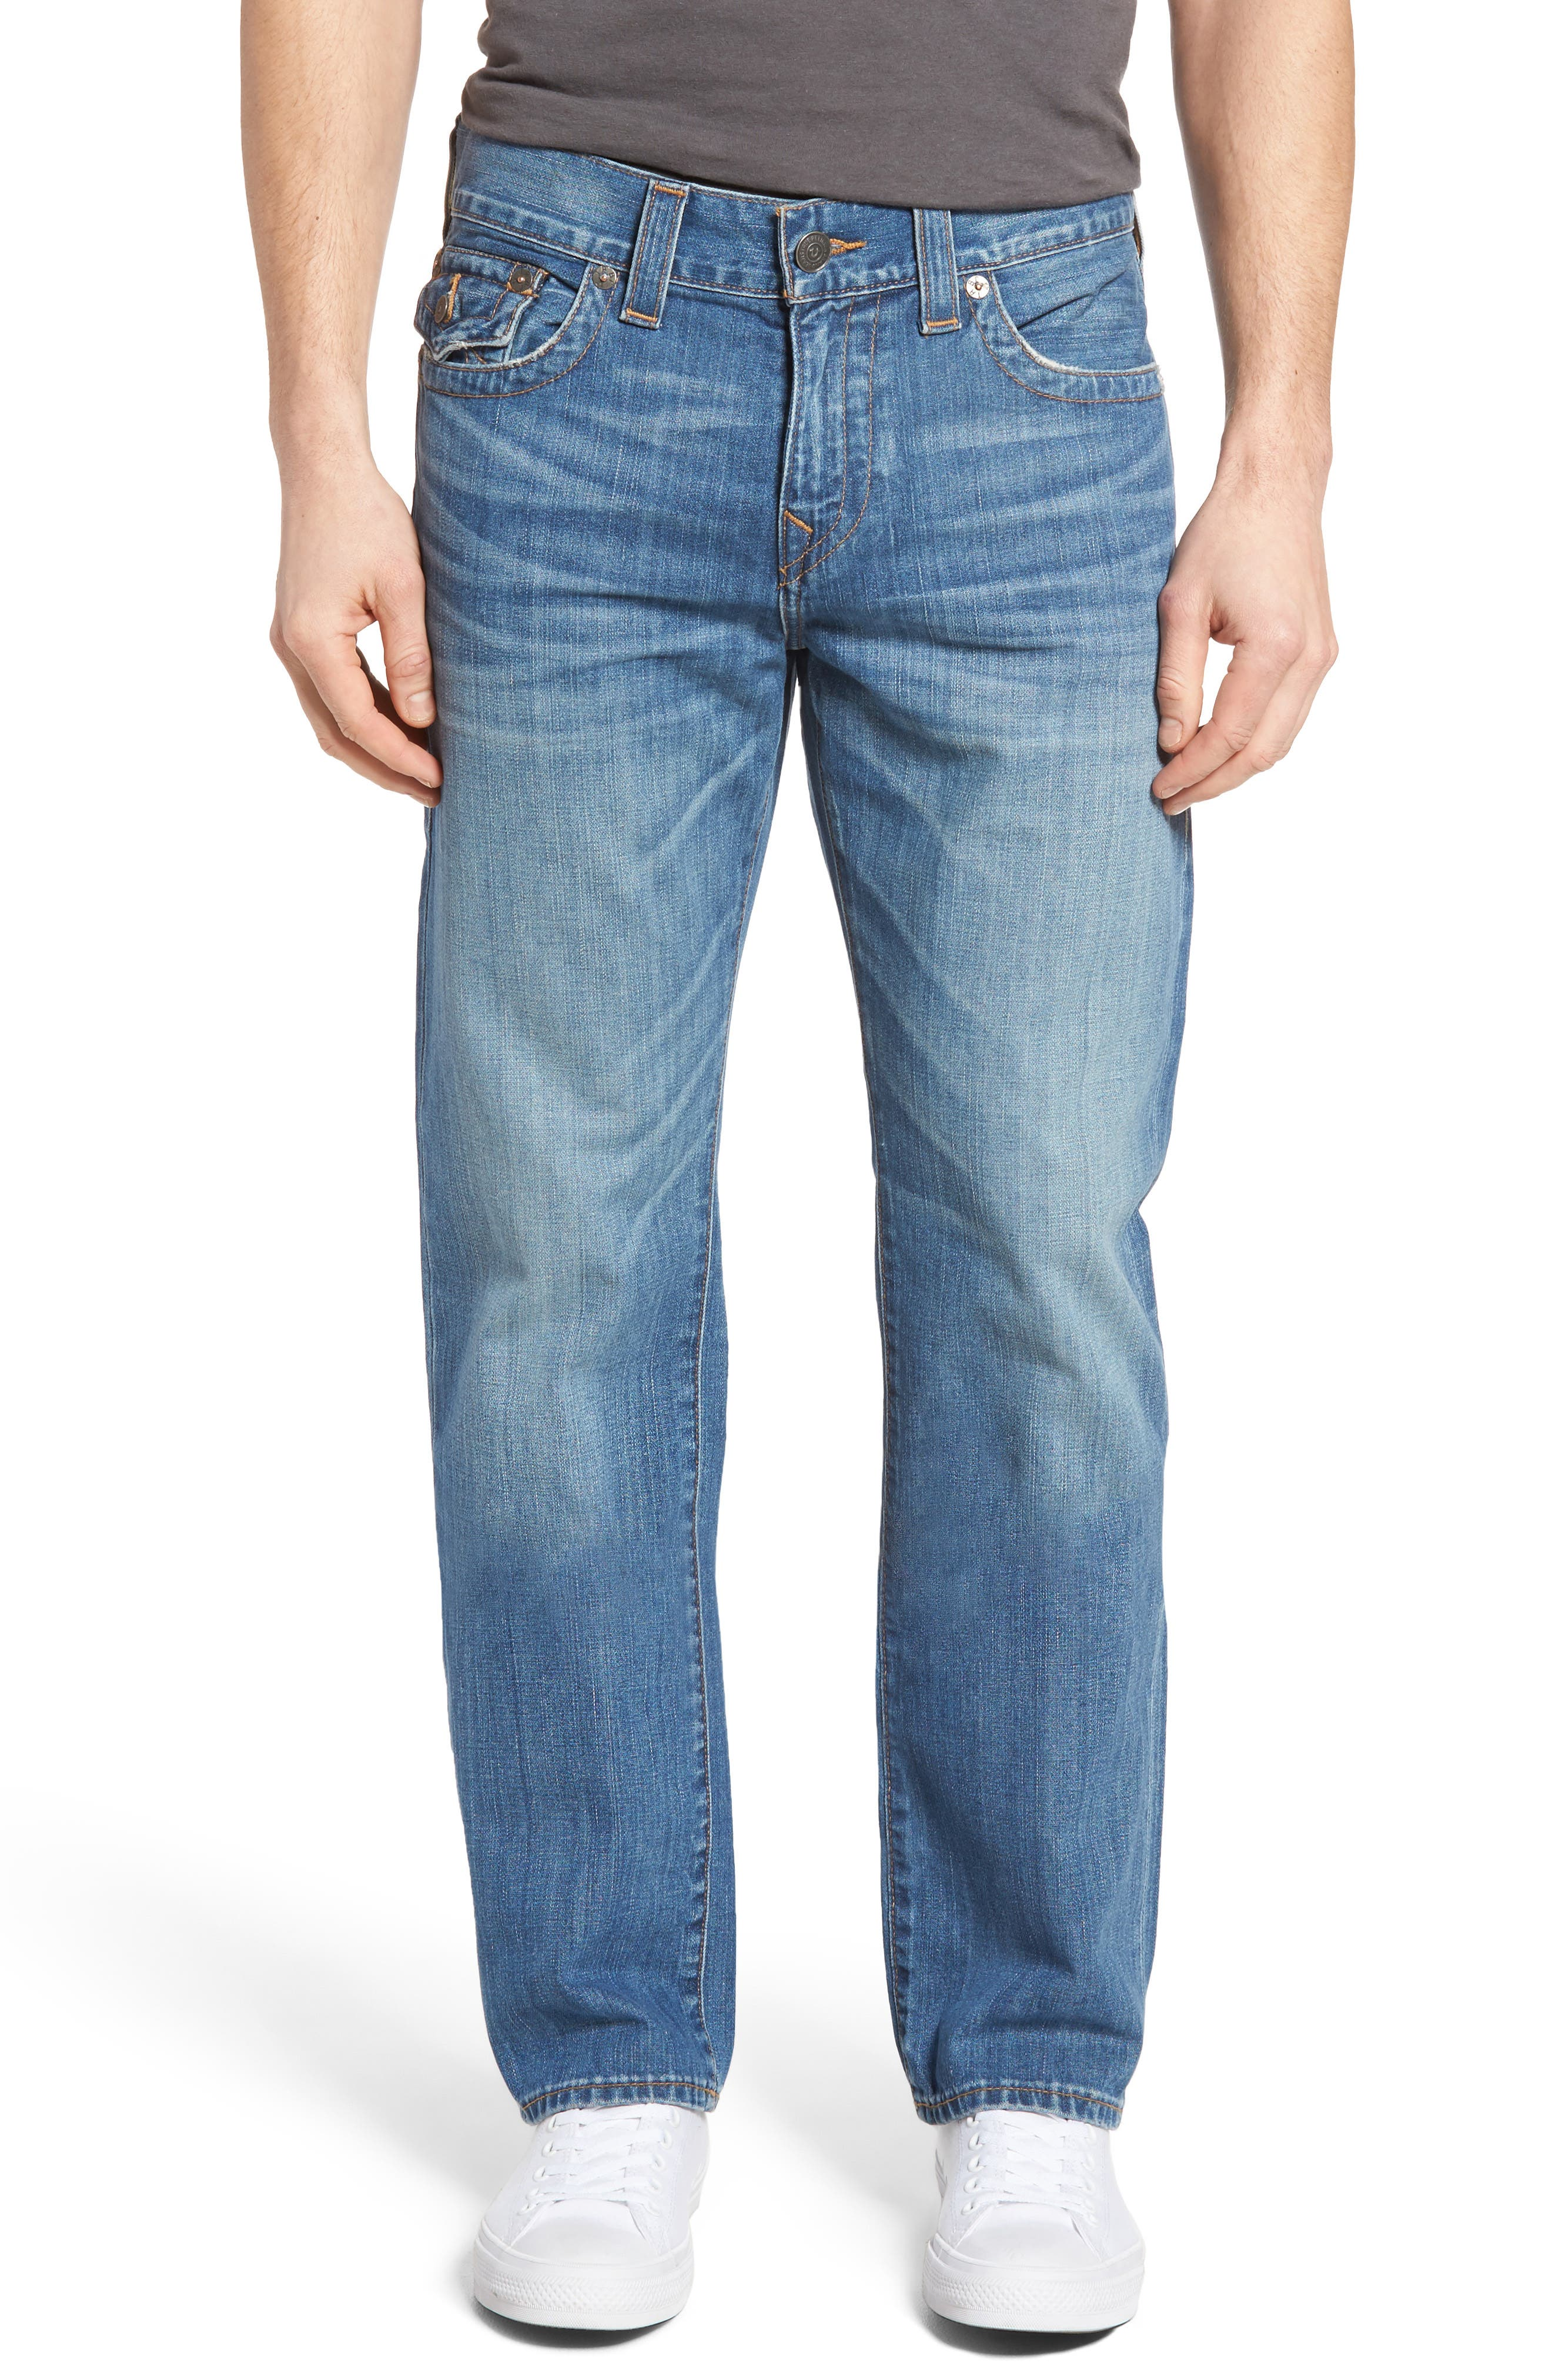 Ricky Relaxed Fit Jeans,                             Main thumbnail 1, color,                             403